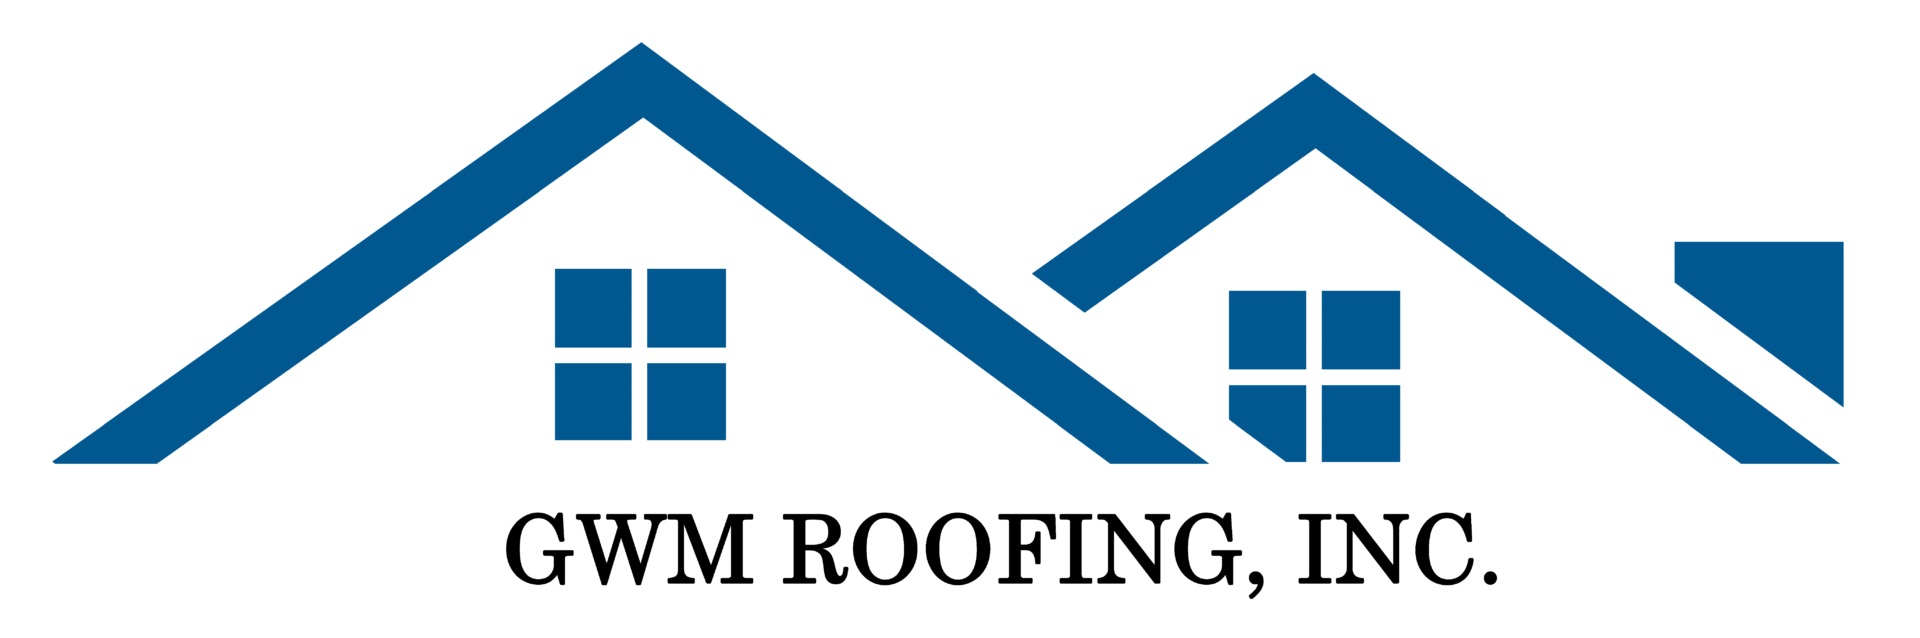 GWM Roofing, Inc.